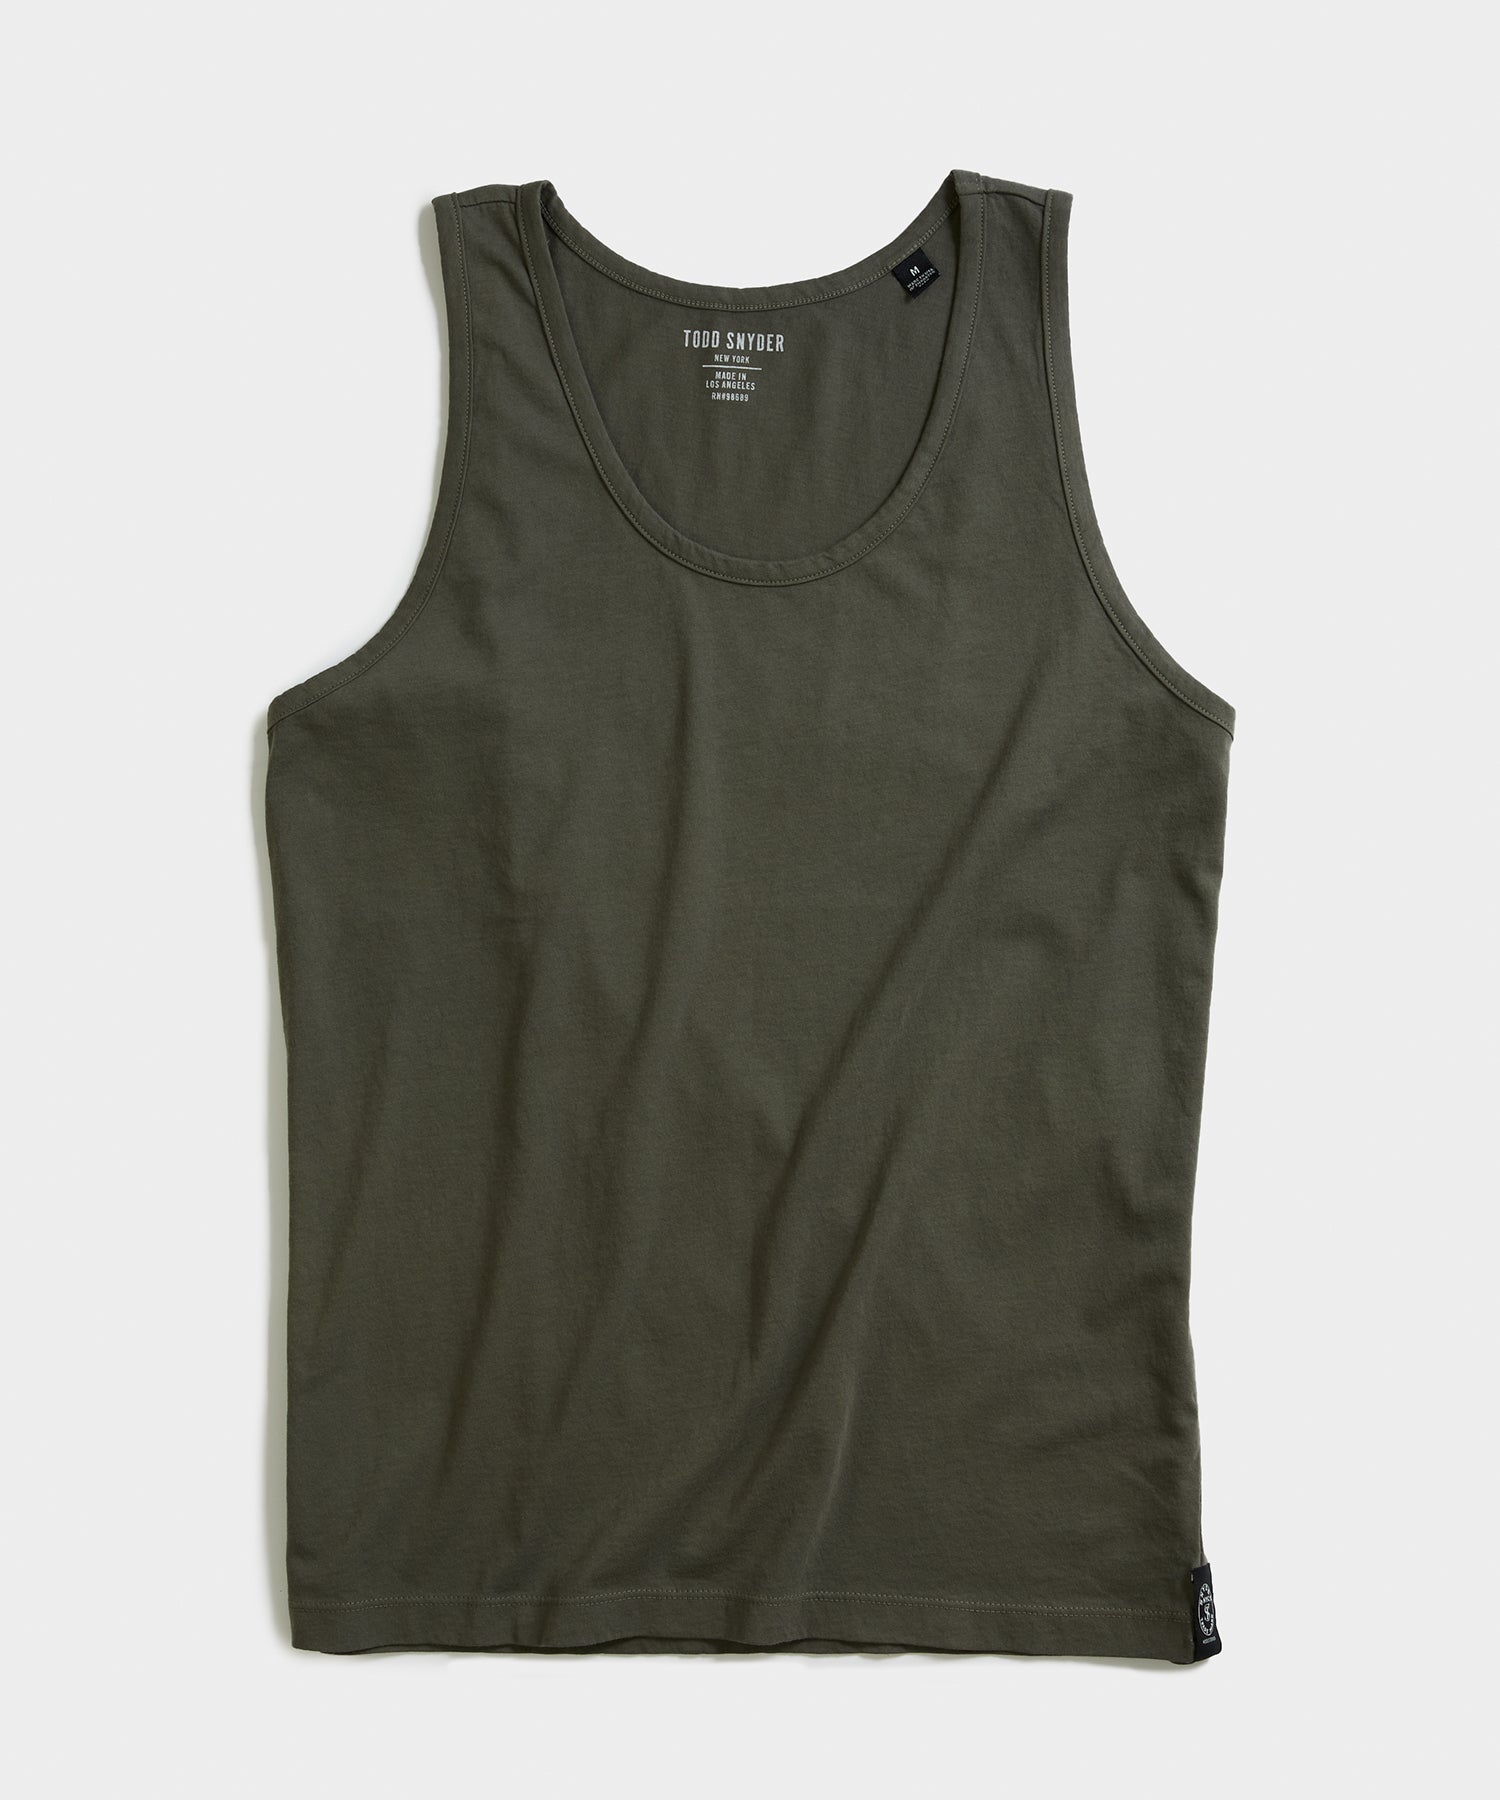 Made in L.A. Tank Top in Olive